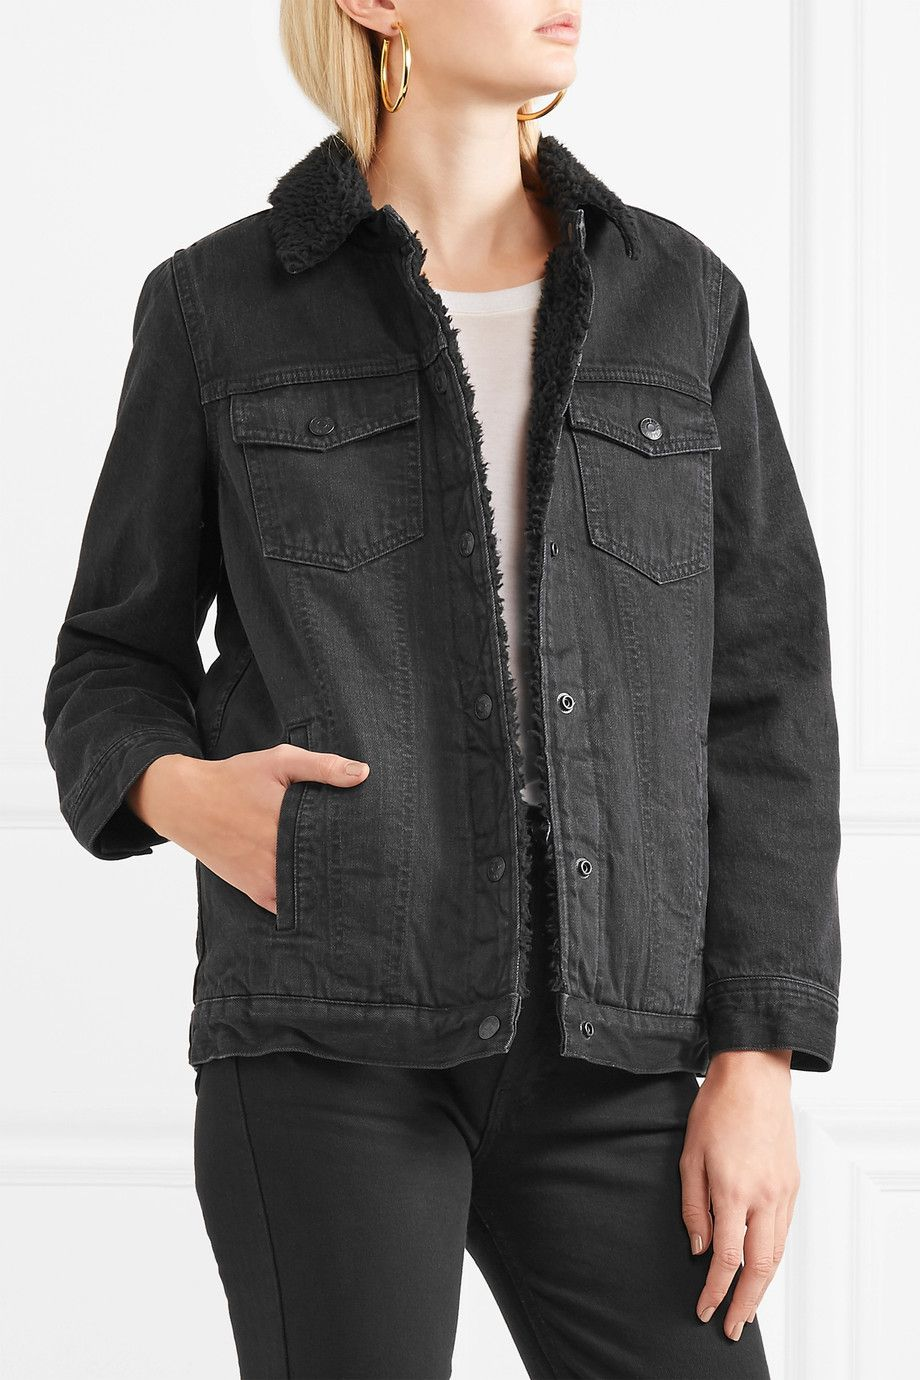 Madewell Oversized denim jacket Oversized denim jacket